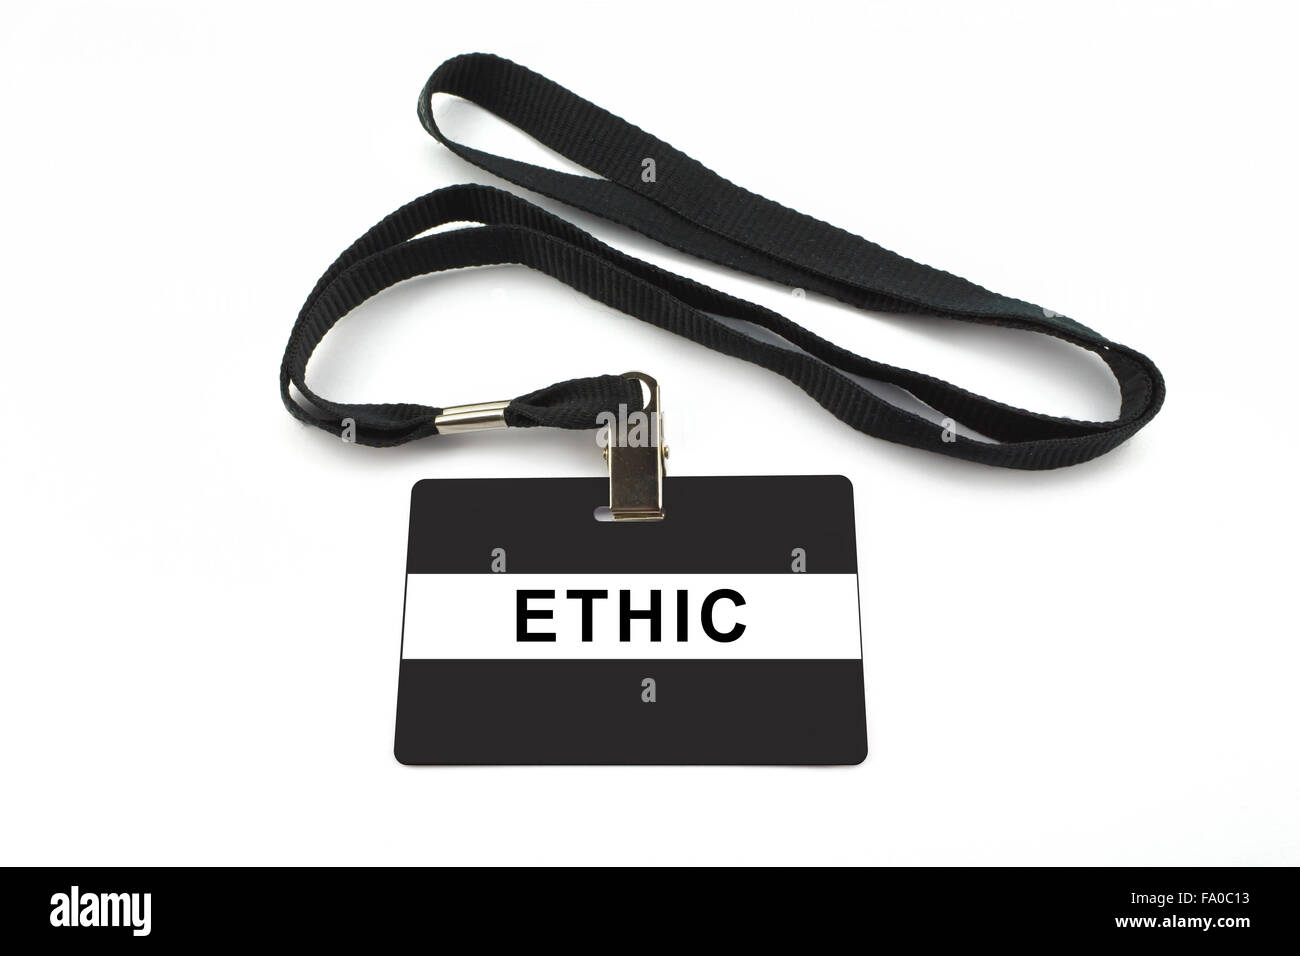 ethic badge with strip isolated on white background - Stock Image